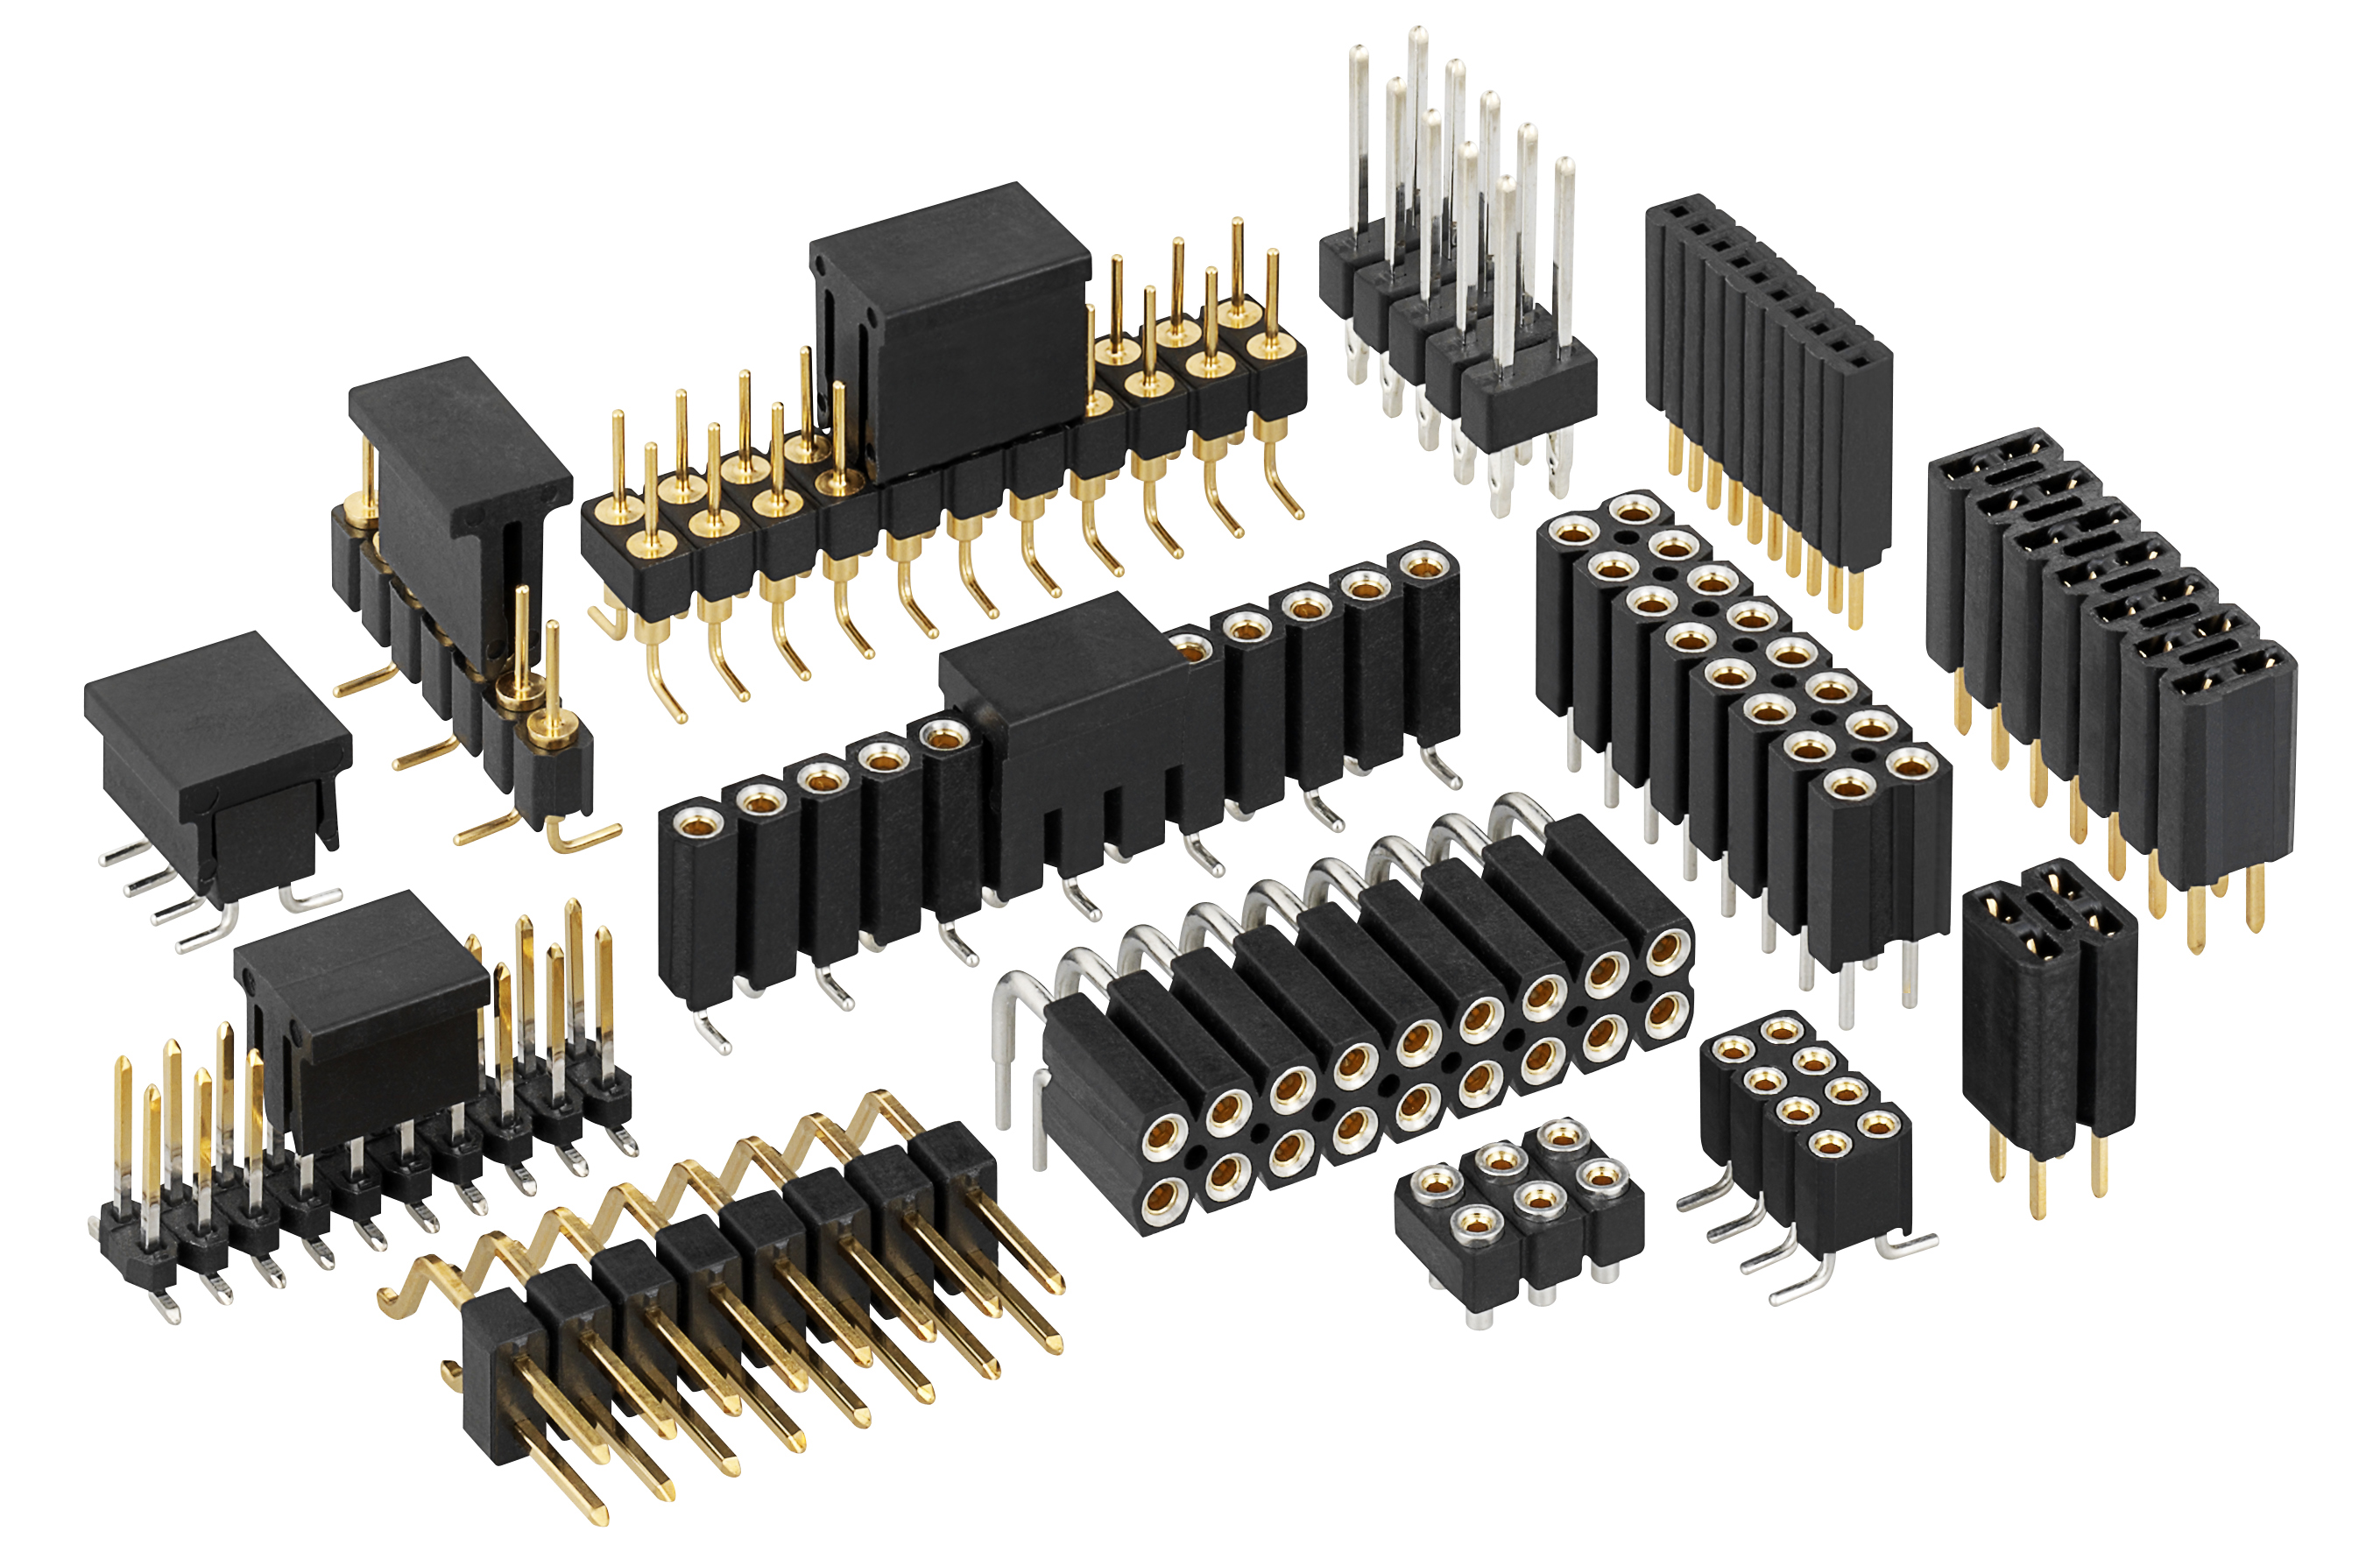 Optimum Pole Number Separation From Circuit Board Connectors Image Led Pcb Download 300dpi